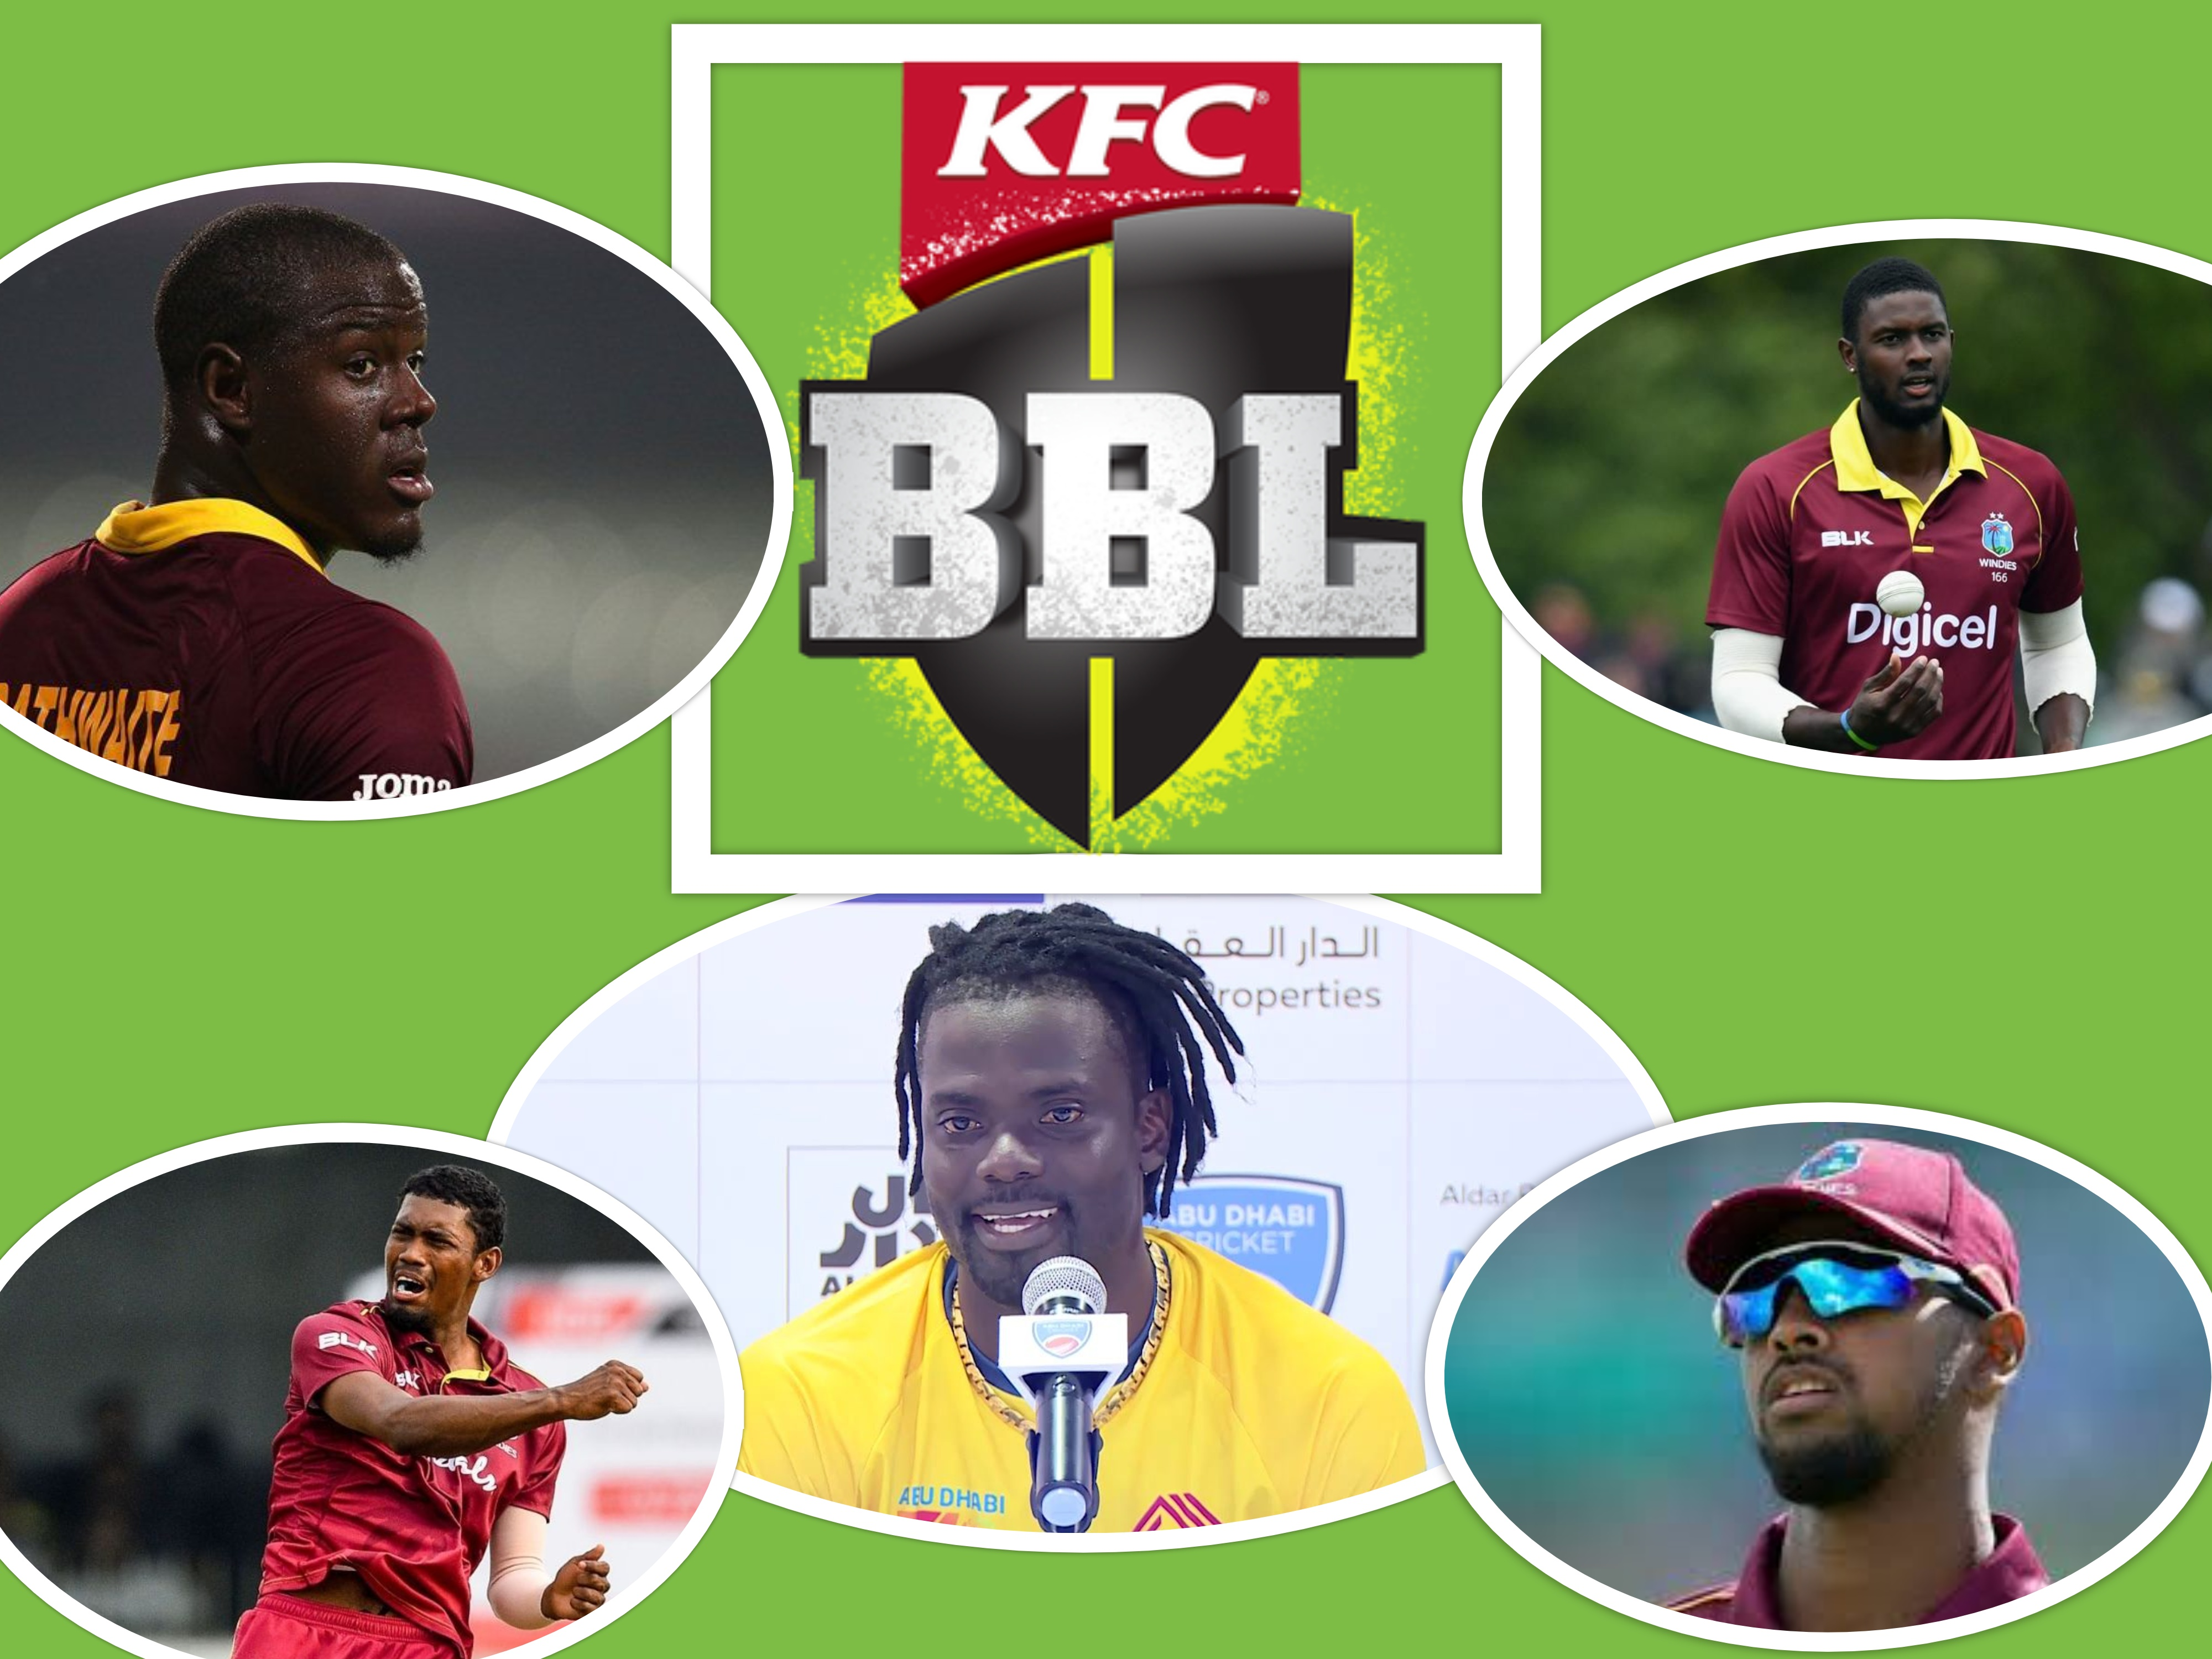 West Indian Players in Big Bash League 2020